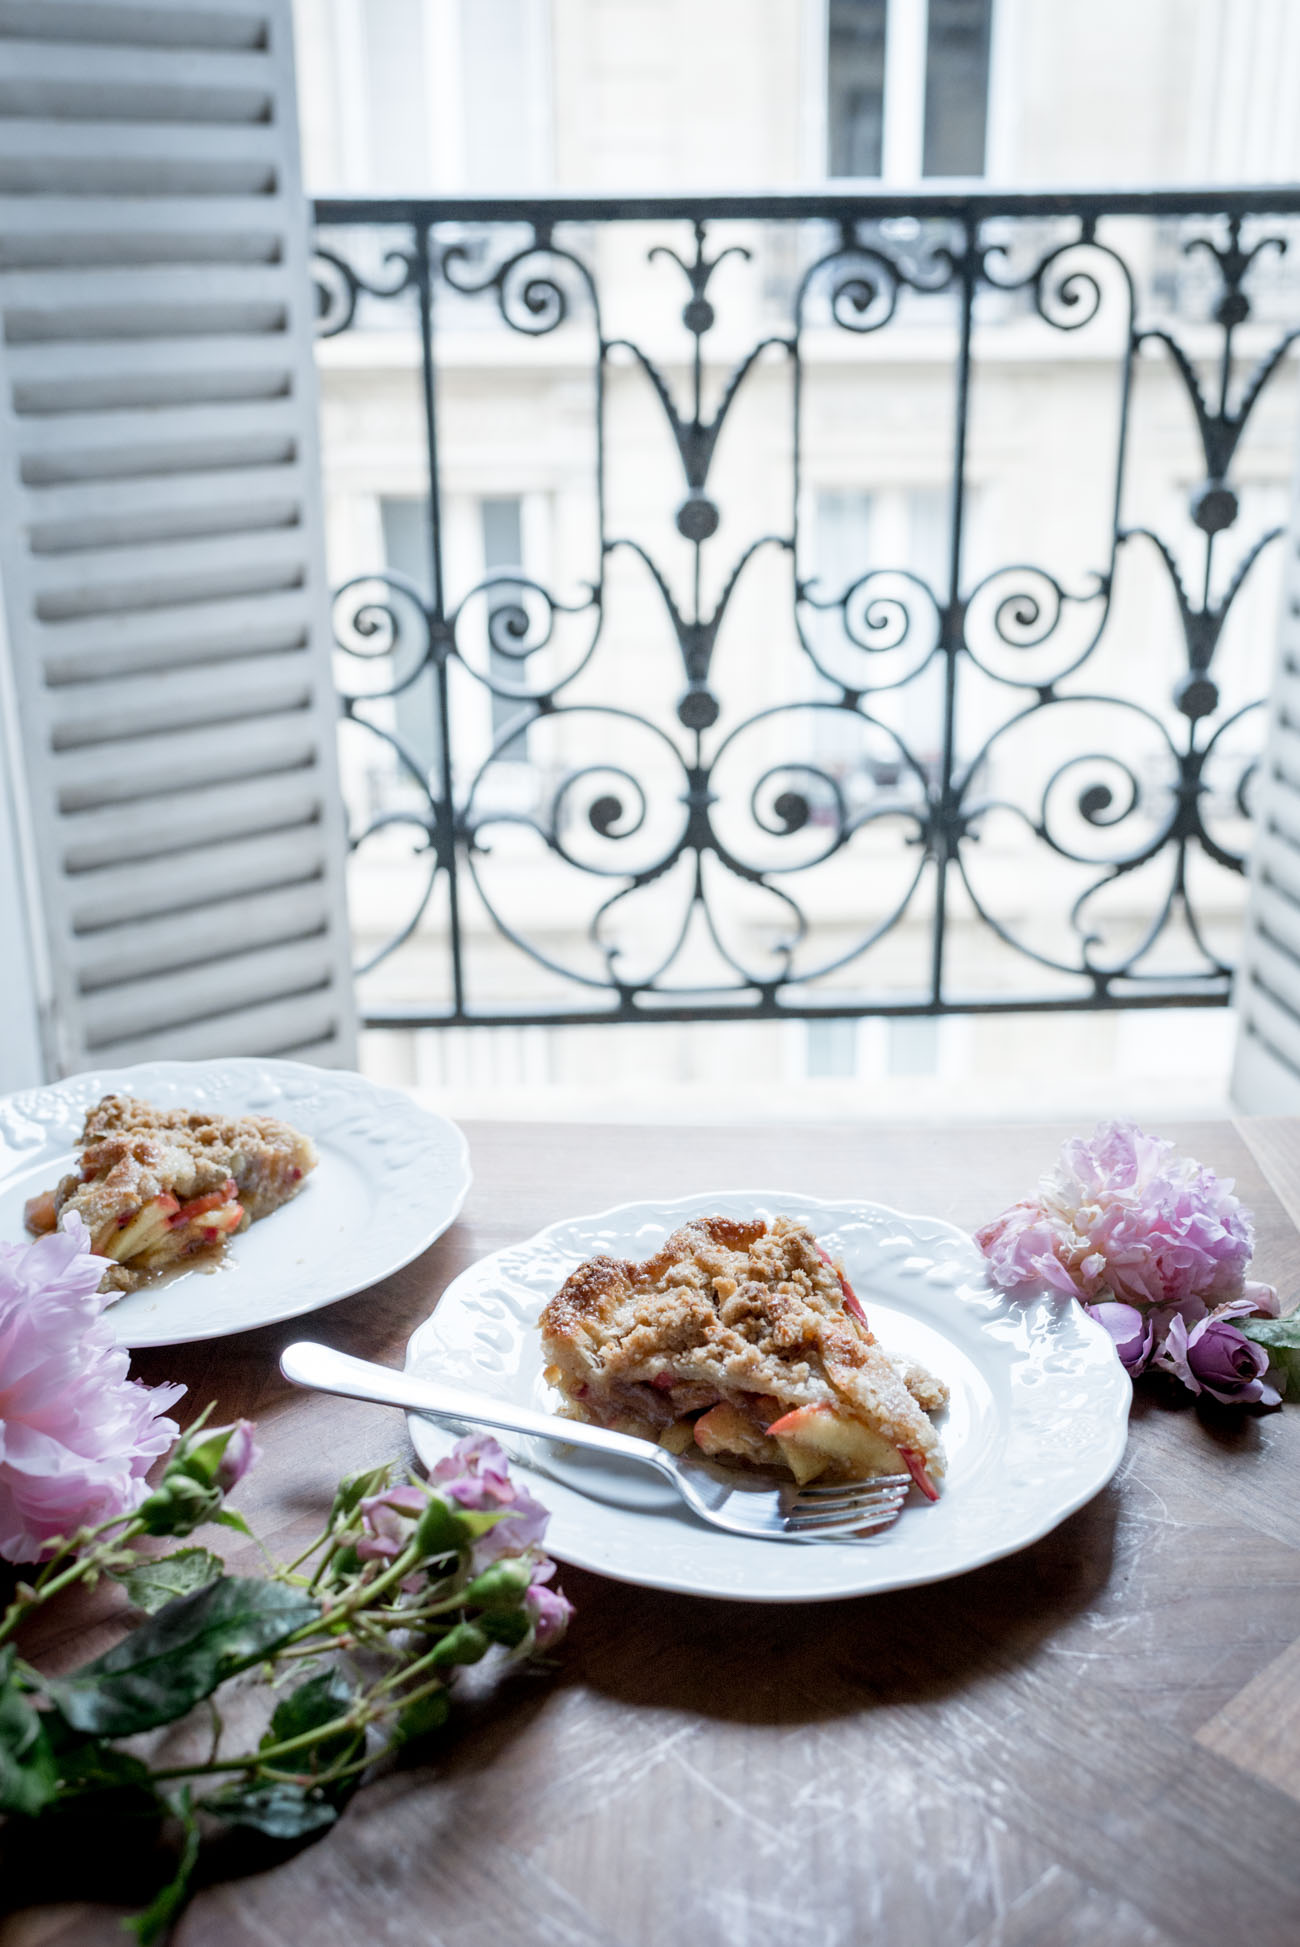 Hazelnut-Streusel-Apple-Pie-with-Brown-Butter-8.jpg